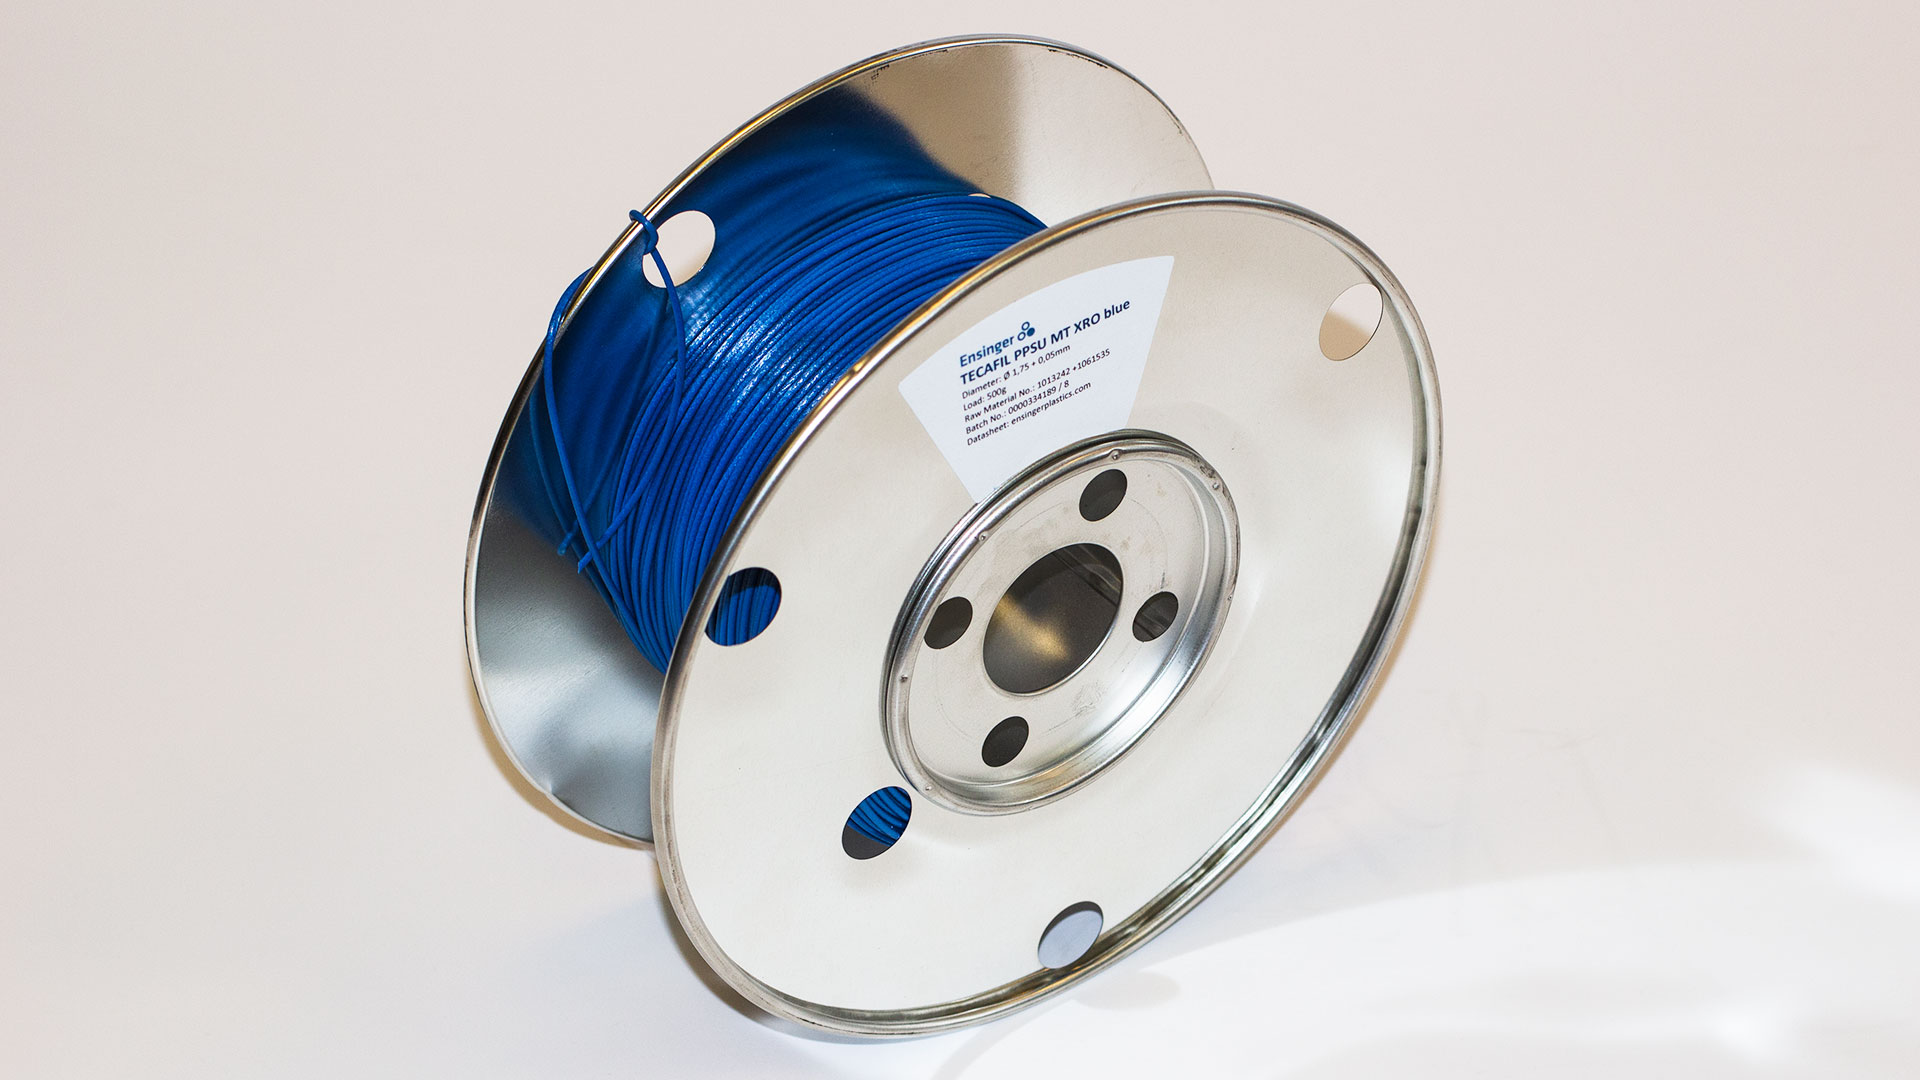 Filament spool loaded with blue PPSU